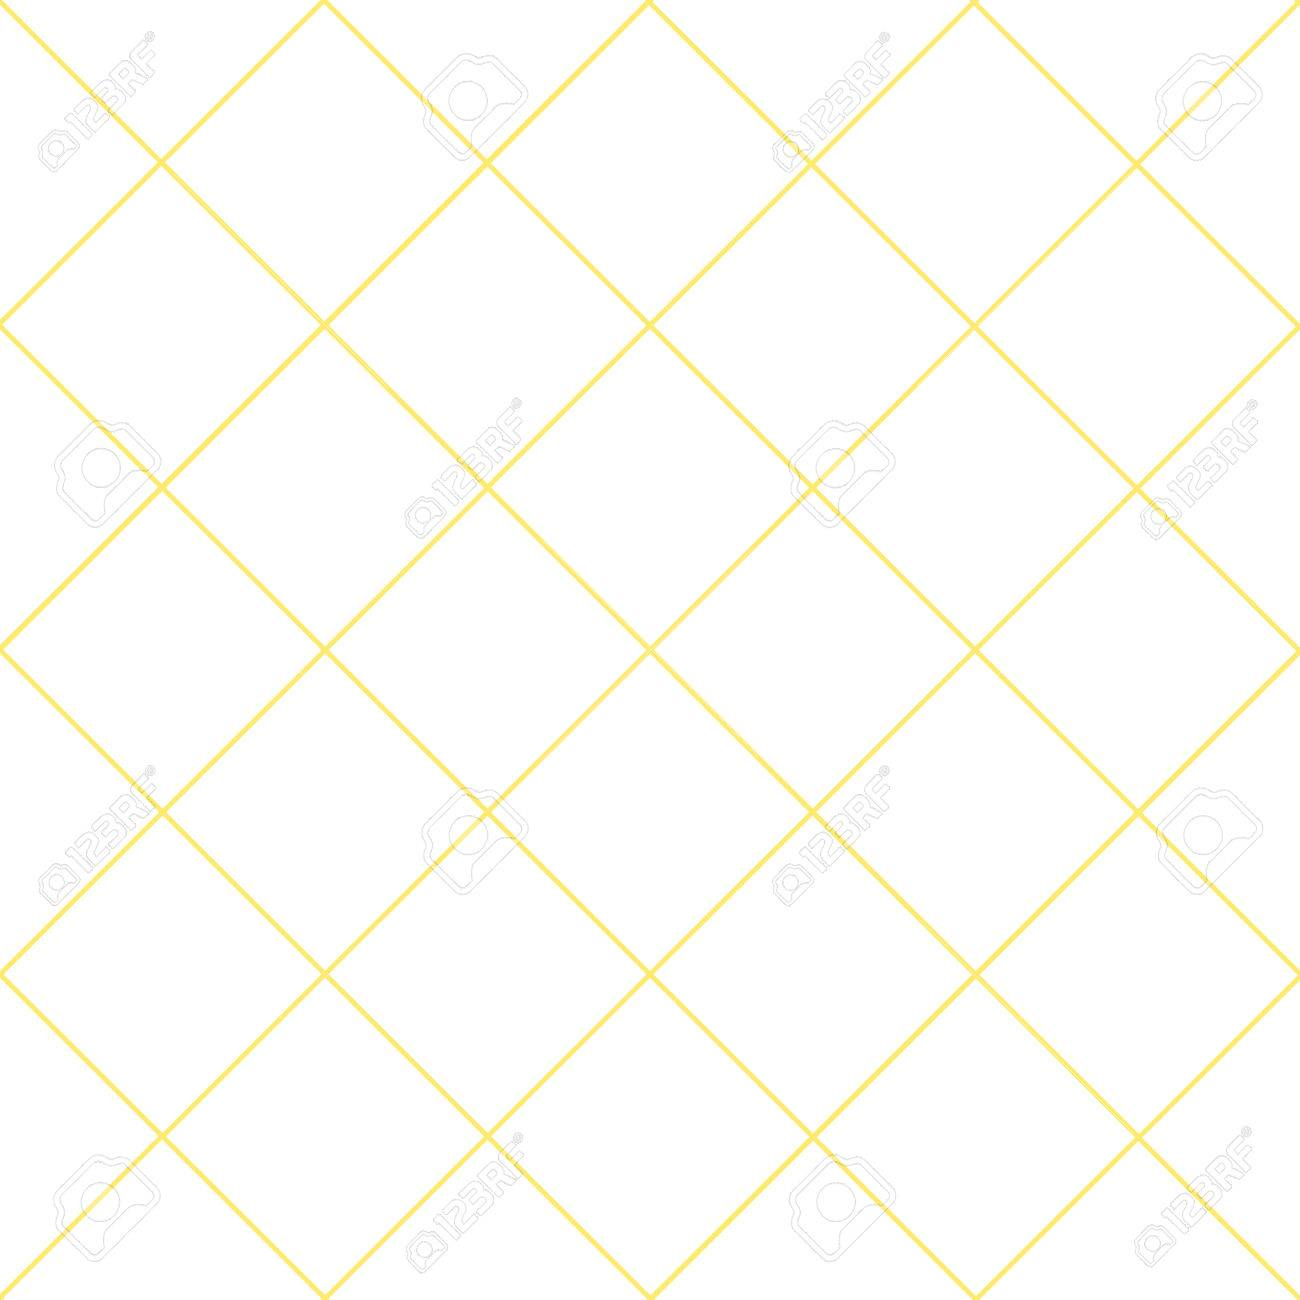 Yellow Grid White Diamond Background Vector Illustration